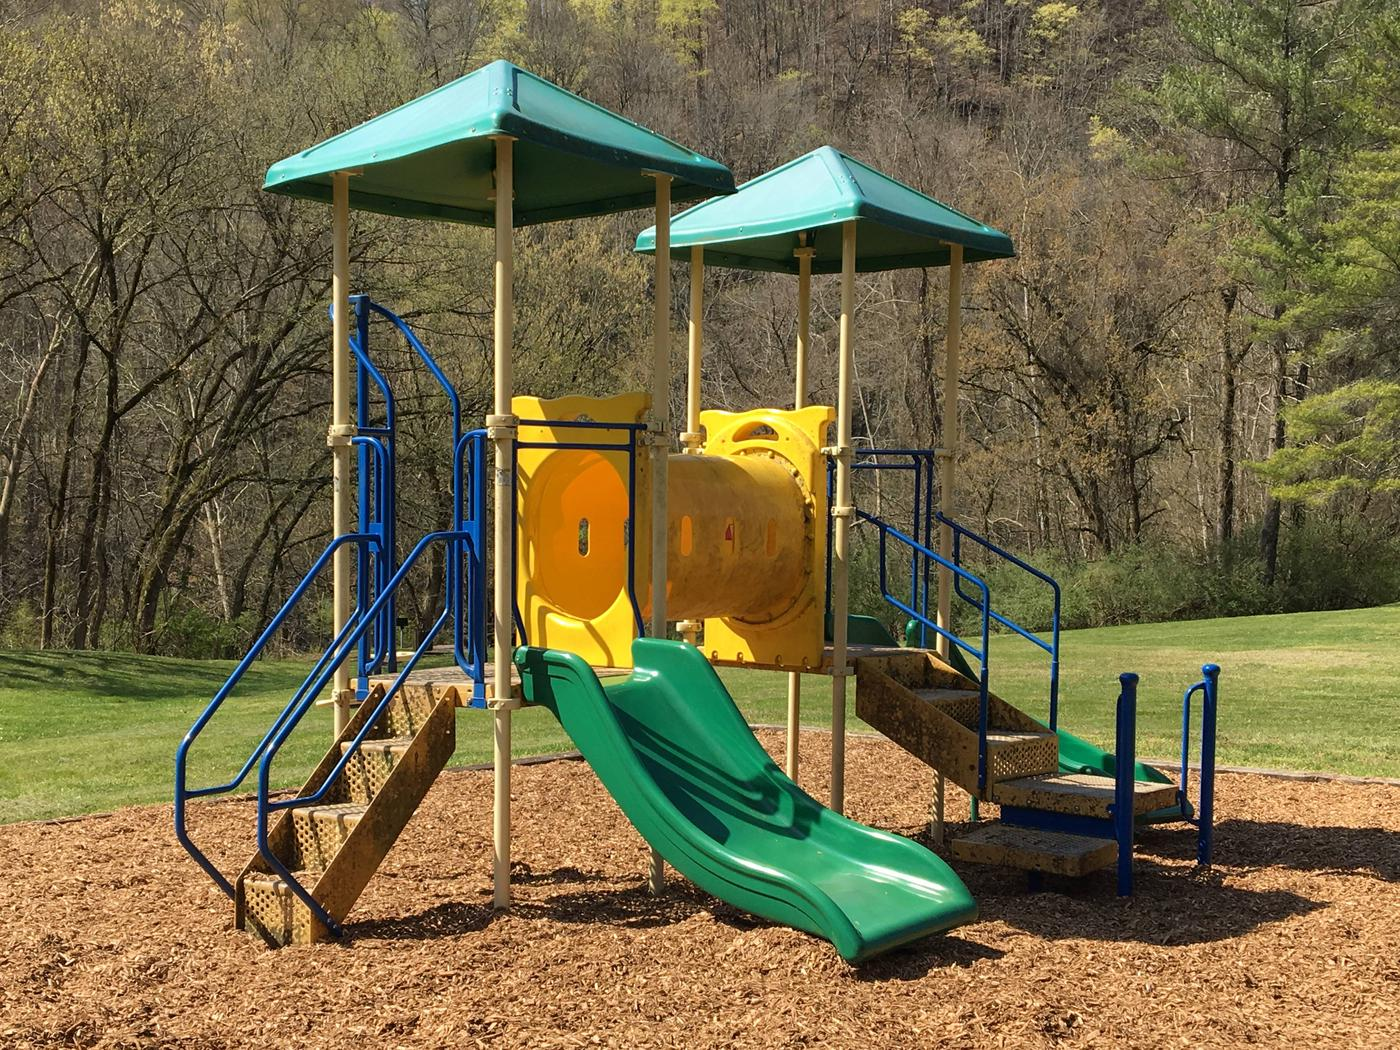 DALE HOLLOW DAMSITE GROUP SHELTER L1 TODDLER PLAYGROUNDDALE HOLLOW DAMSITE GROUP SHELTER L1